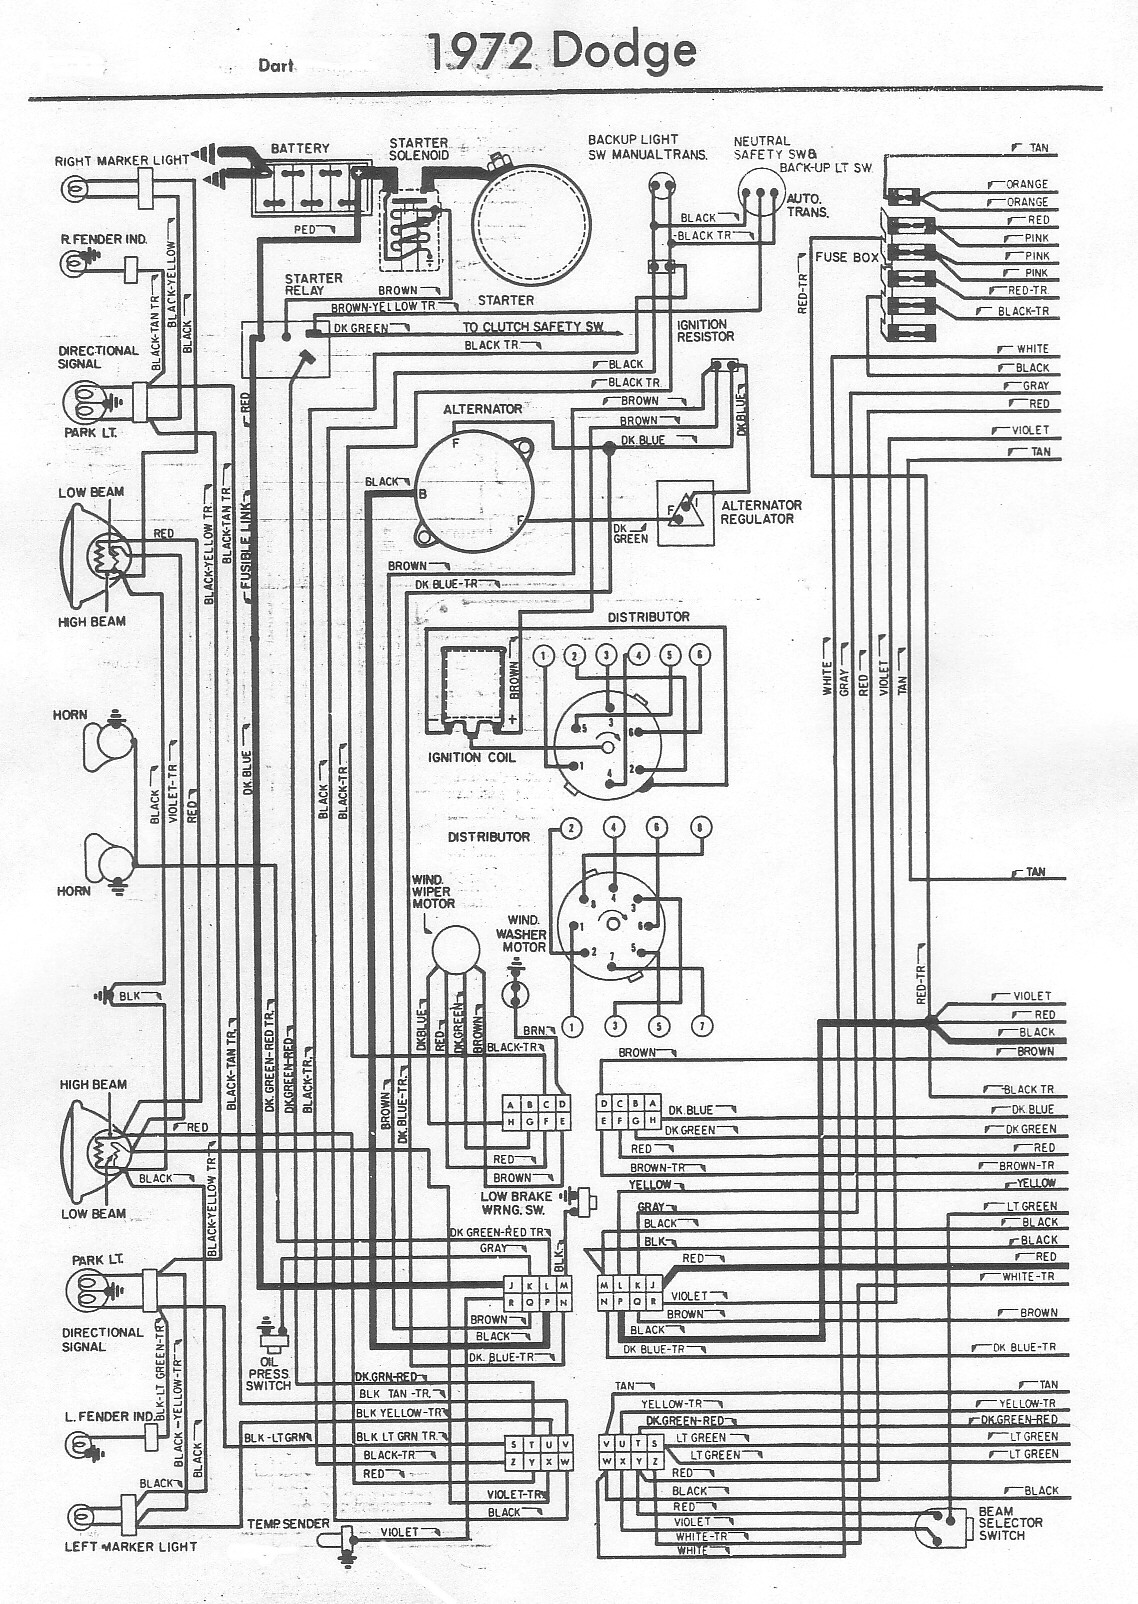 2013 dodge dart stereo wiring diagram 1970 dodge dart swinger wiring diagram - somurich.com